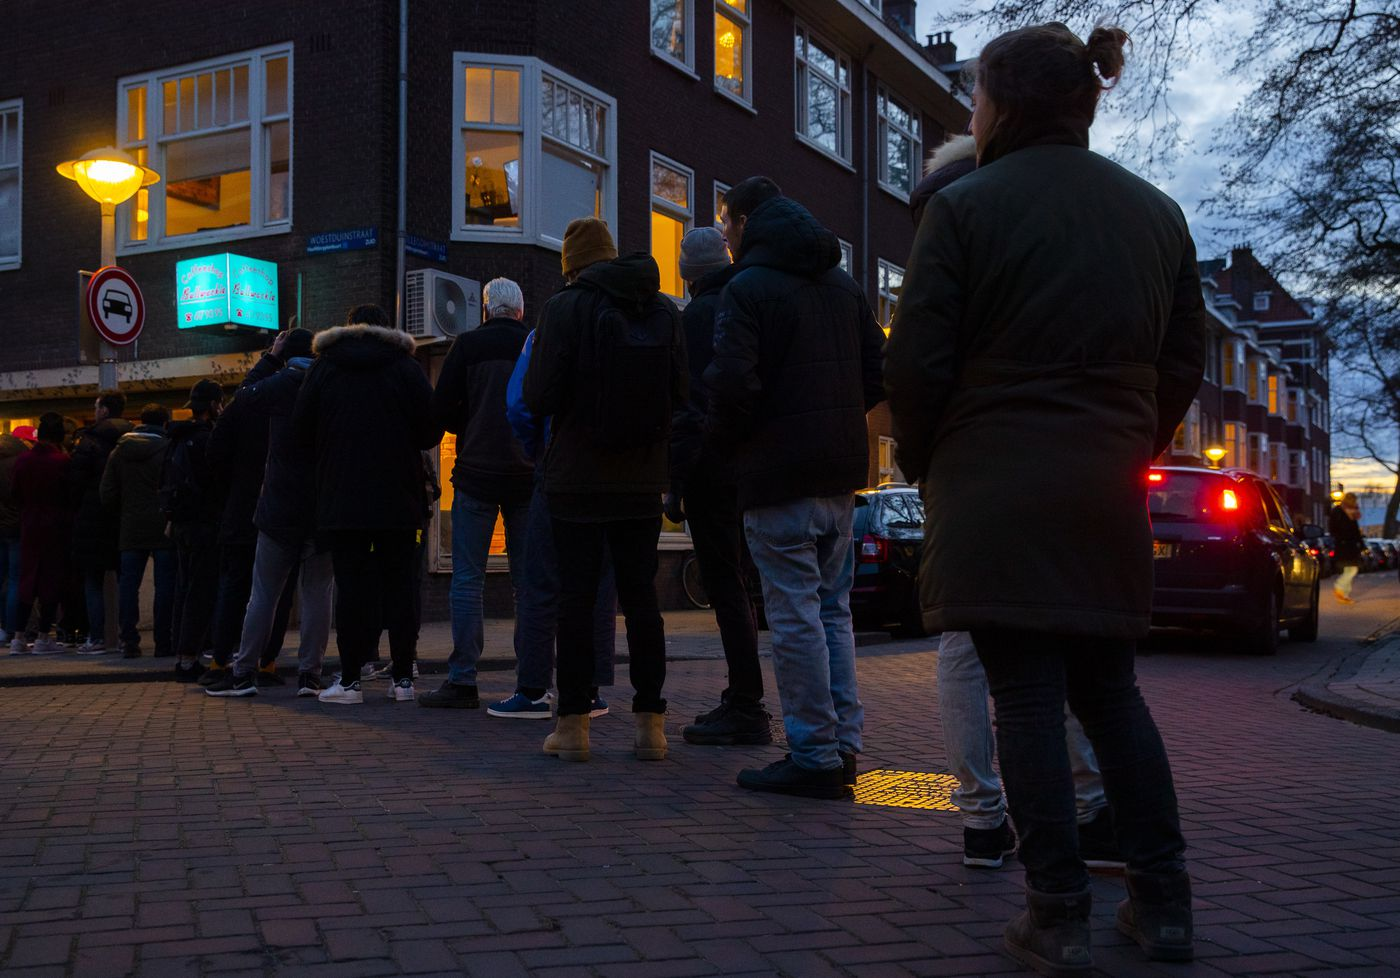 People queue to buy marijuana at the coffeeshop Bulwackie in Amsterdam, Netherlands, Sunday, March 15, 2020, after a TV address by health minister Bruno Bruins who ordered all Dutch schools, cafes, restaurants, coffeeshops and sport clubs to be closed on Sunday as the government sought to prevent the further spread of coronavirus in the Netherlands. (AP Photo/Peter Dejong)